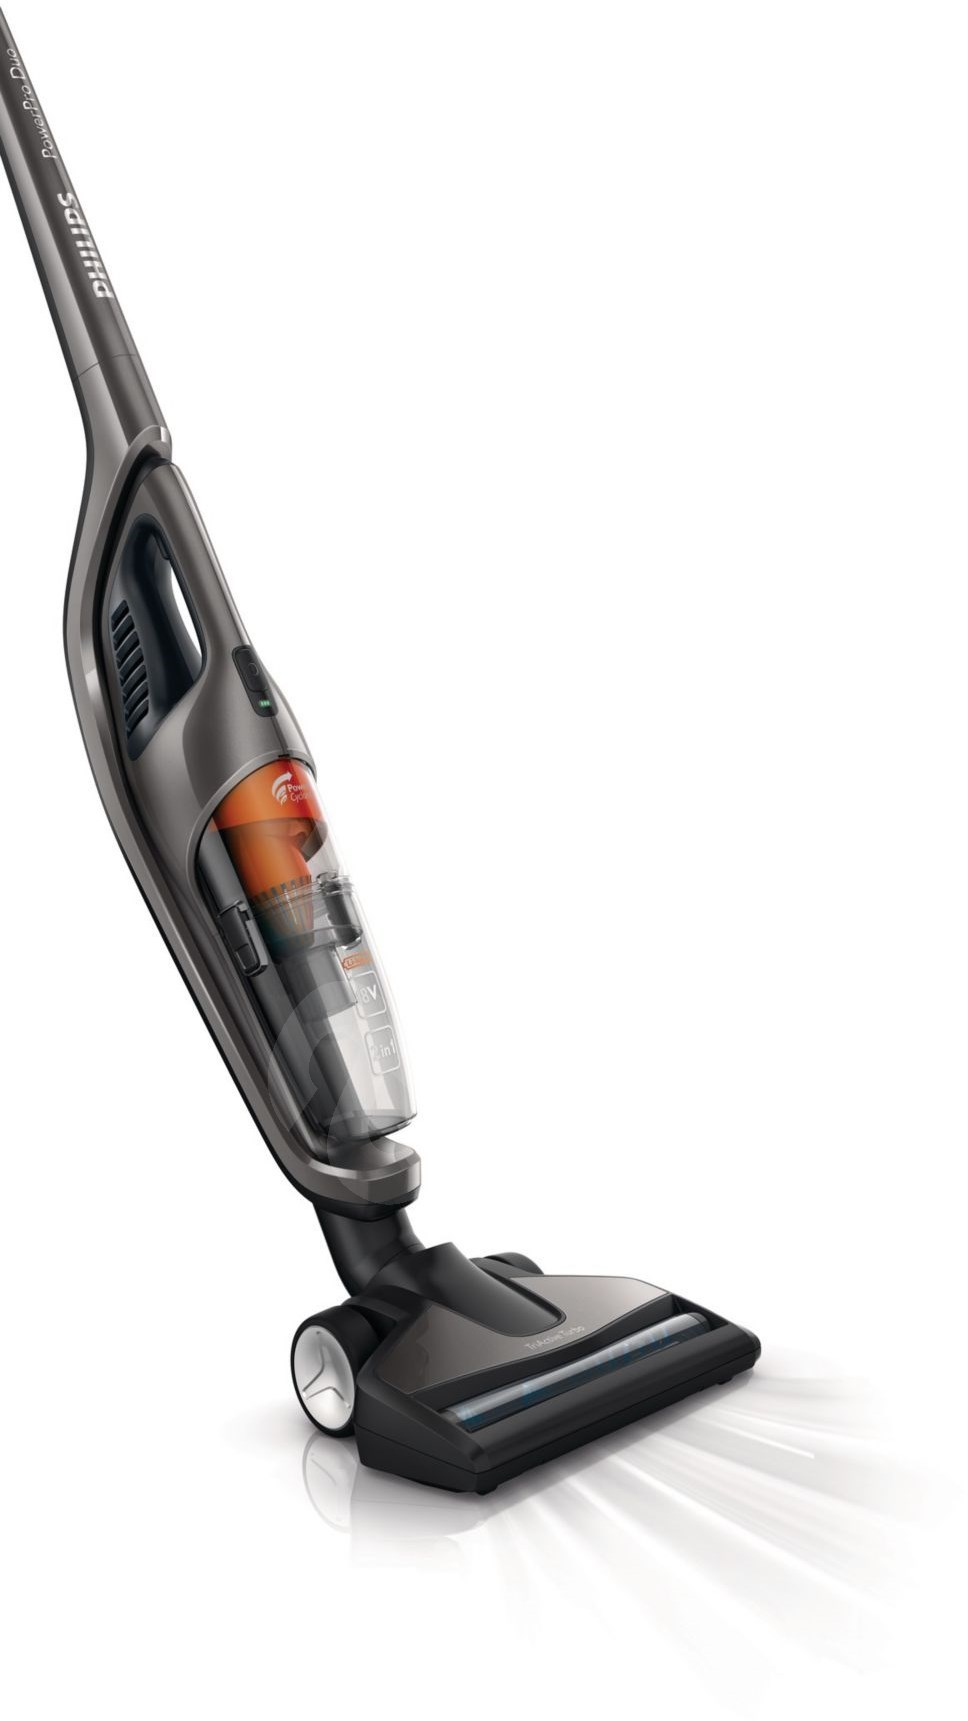 philips fc6168 01 cordless stick vacuum cleaner. Black Bedroom Furniture Sets. Home Design Ideas